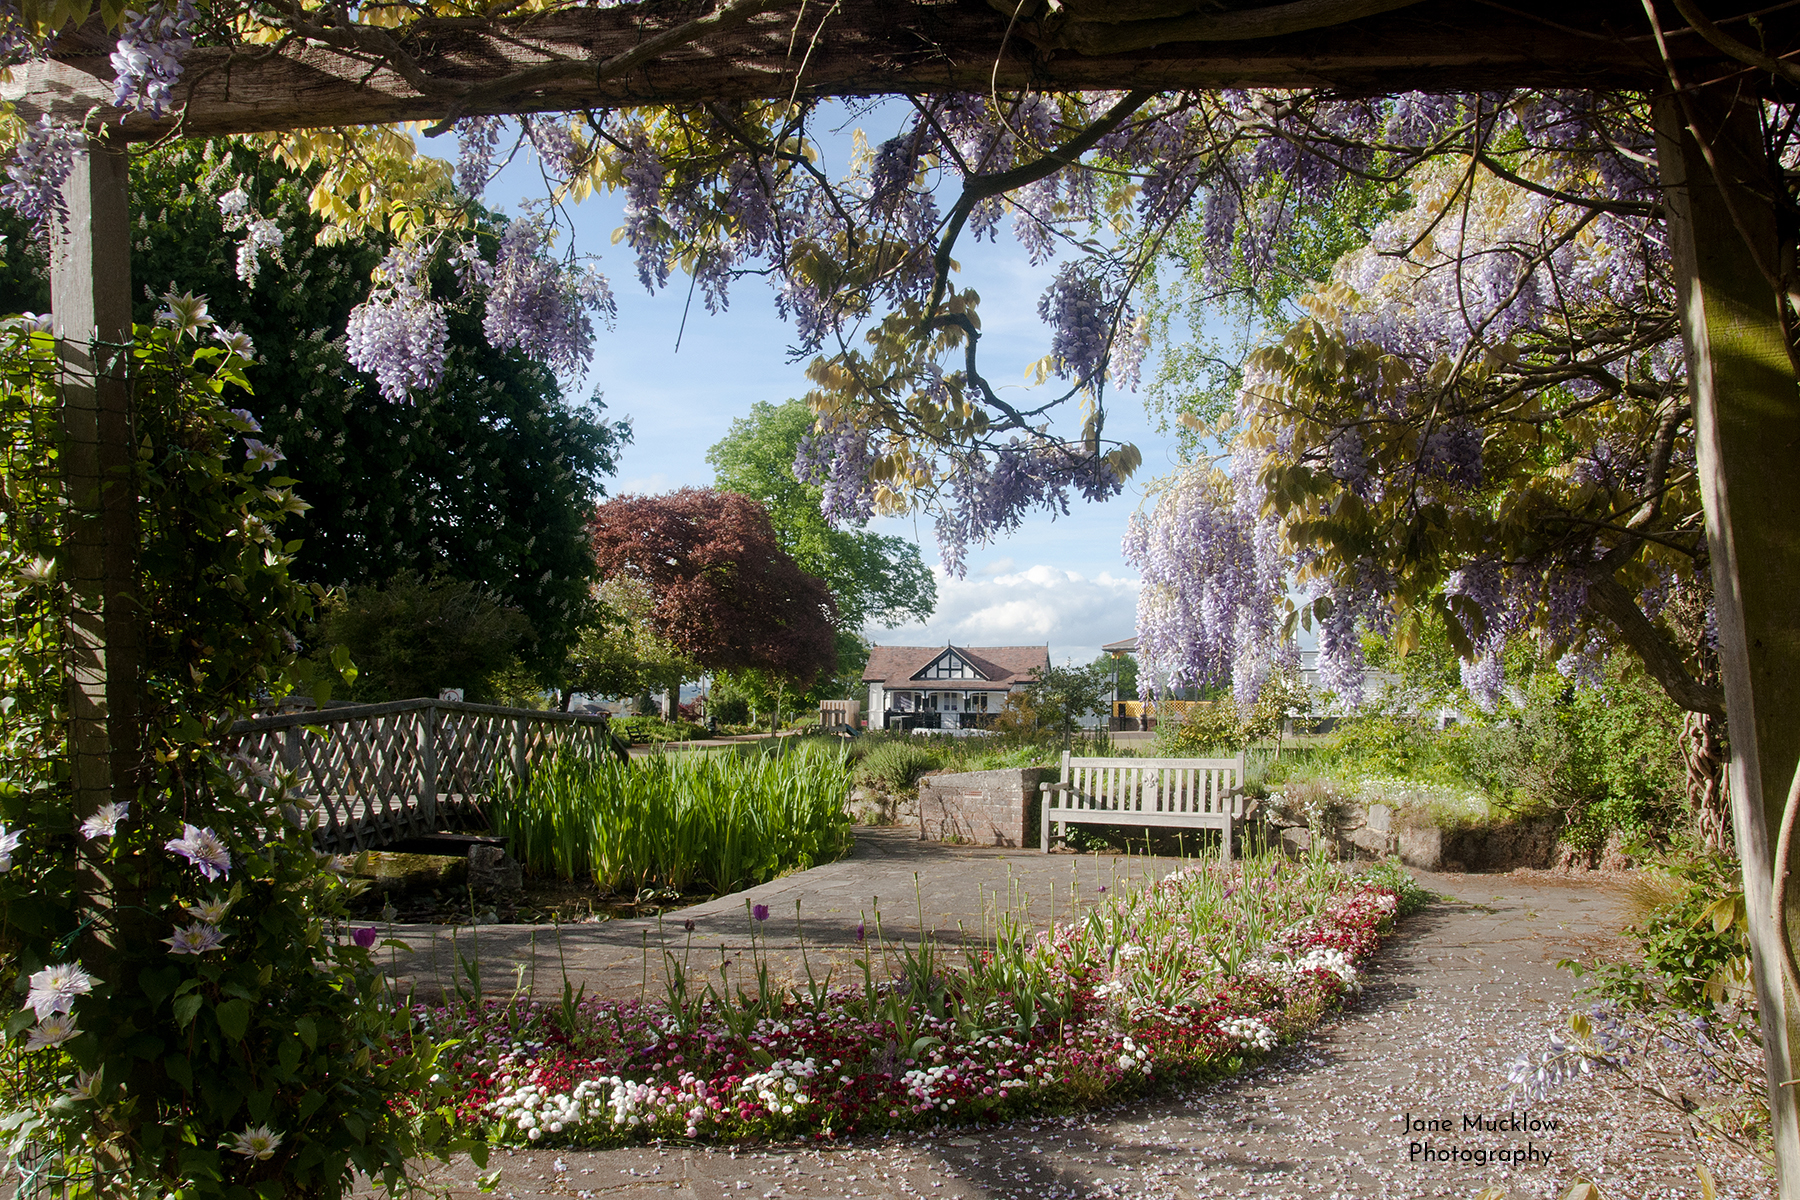 Photograph of the Vine Gardens, Sevenoaks, with wisteria, by Jane Mucklow